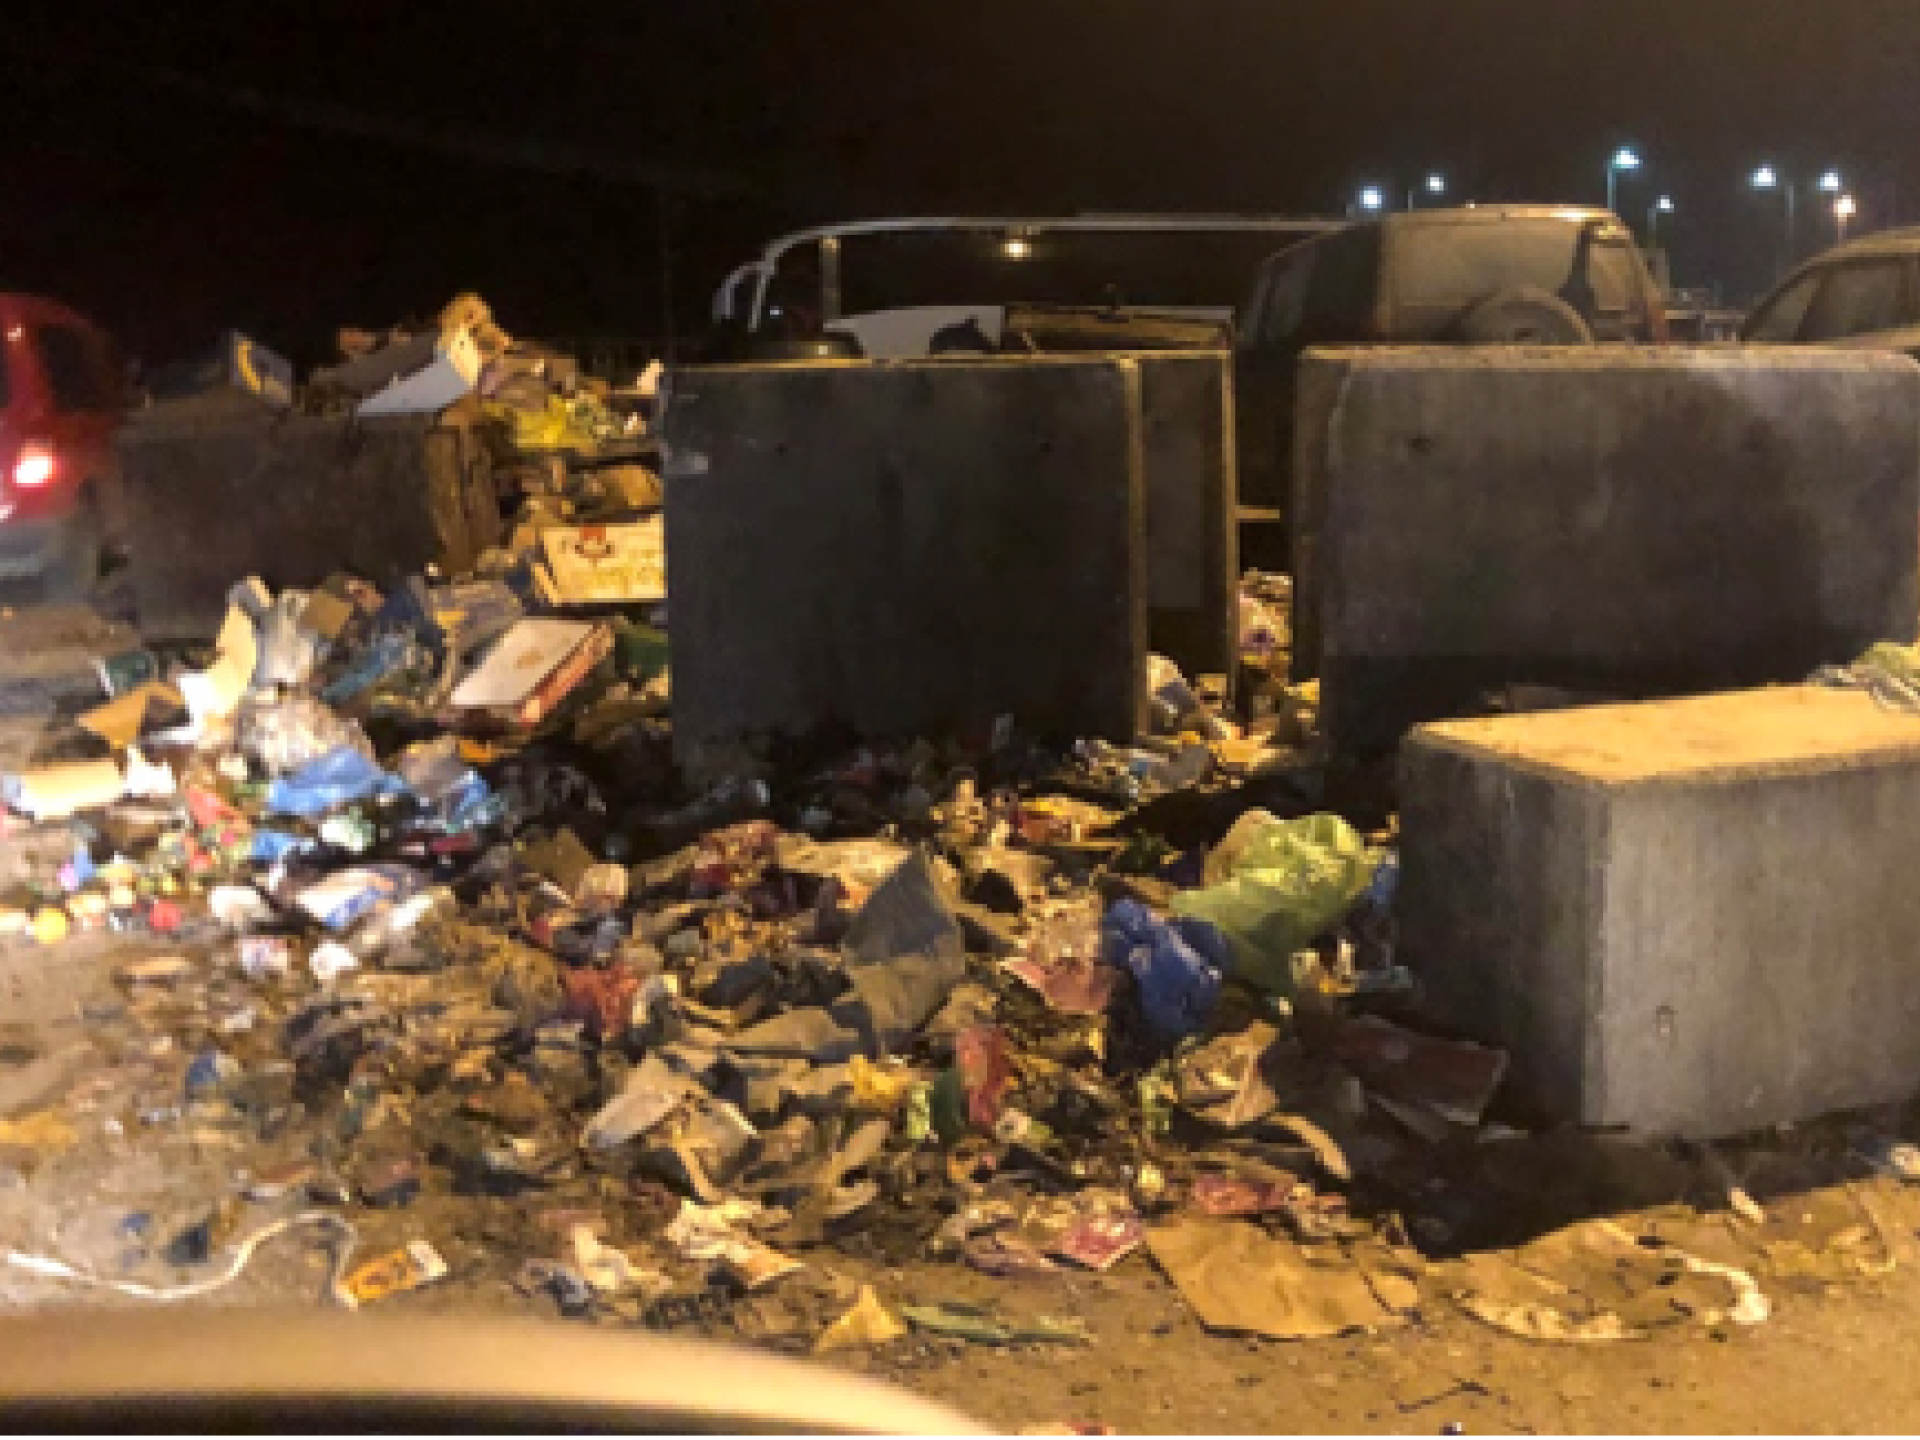 The piles of waste at the entrance to the Tarqumiya car park